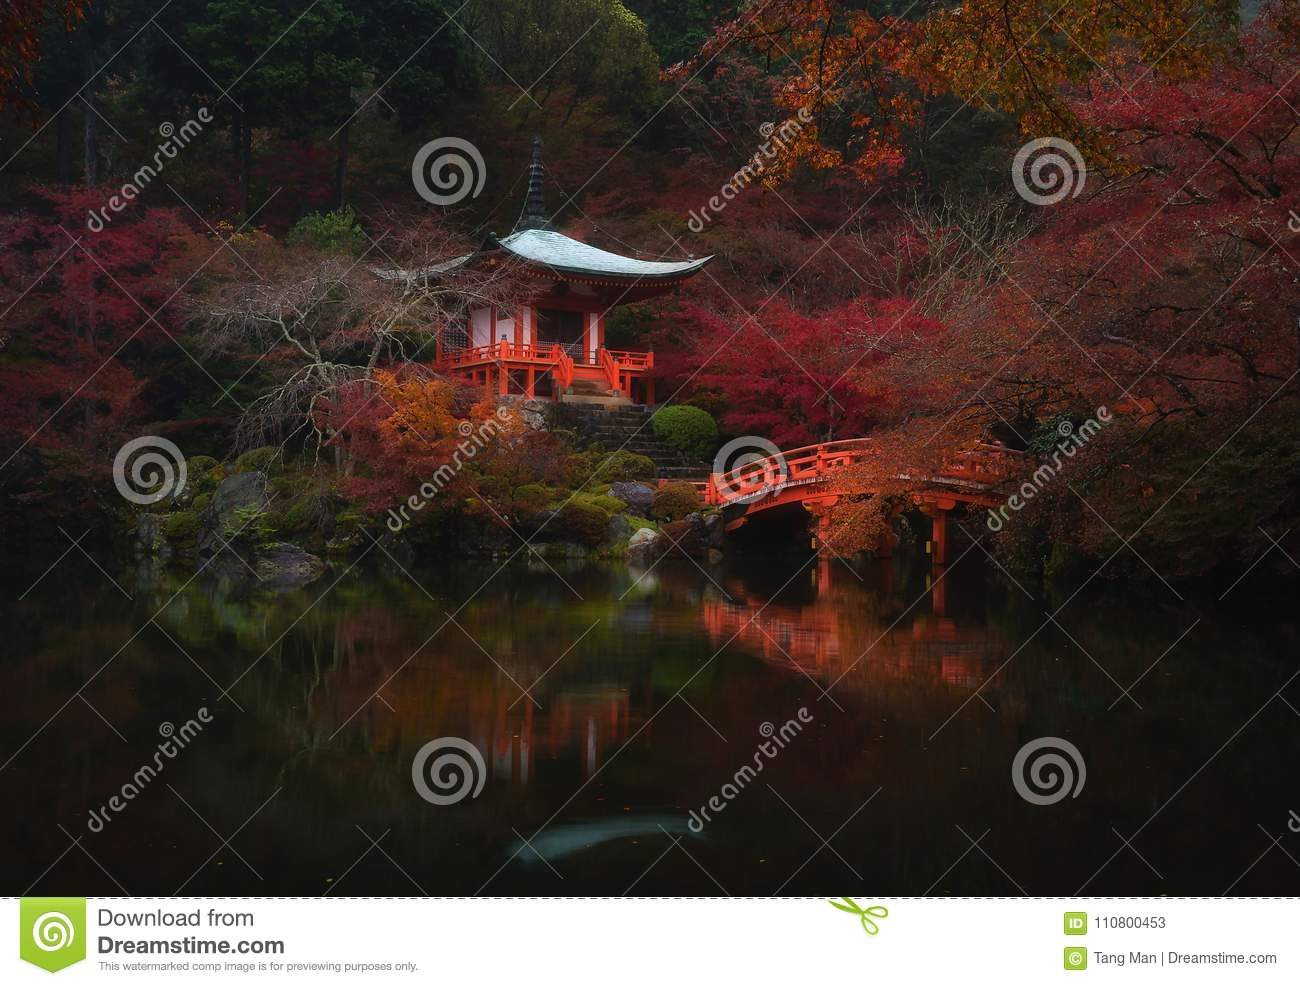 Fall colors and heaven on Earth at Daigoji temple in Kyoto, Japan.